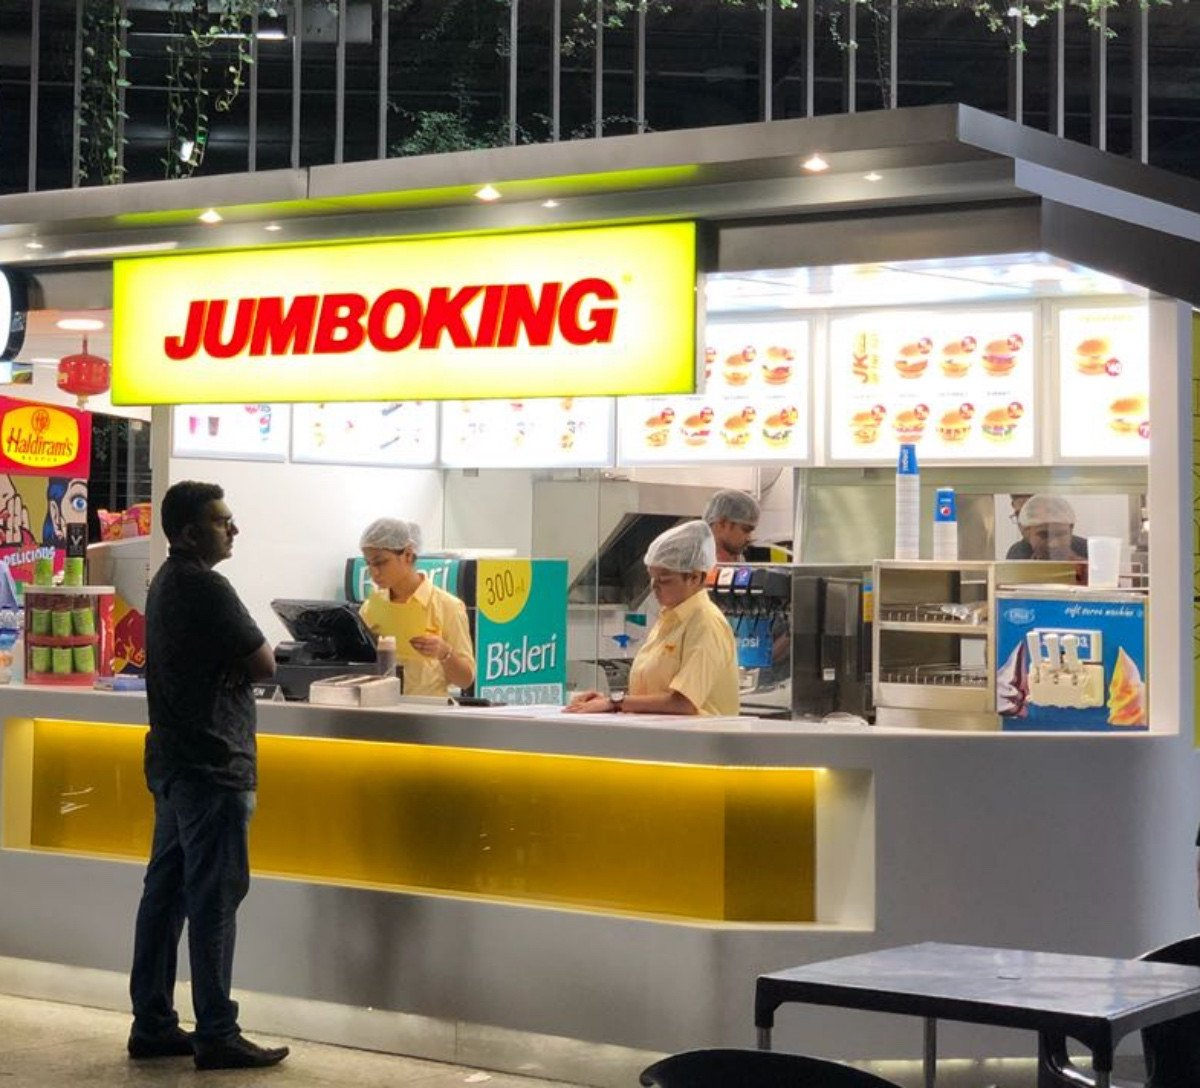 The share of ordering food has increased from 2 to 8 per cent in one year: Jumboking Owner Dheeraj Gupta